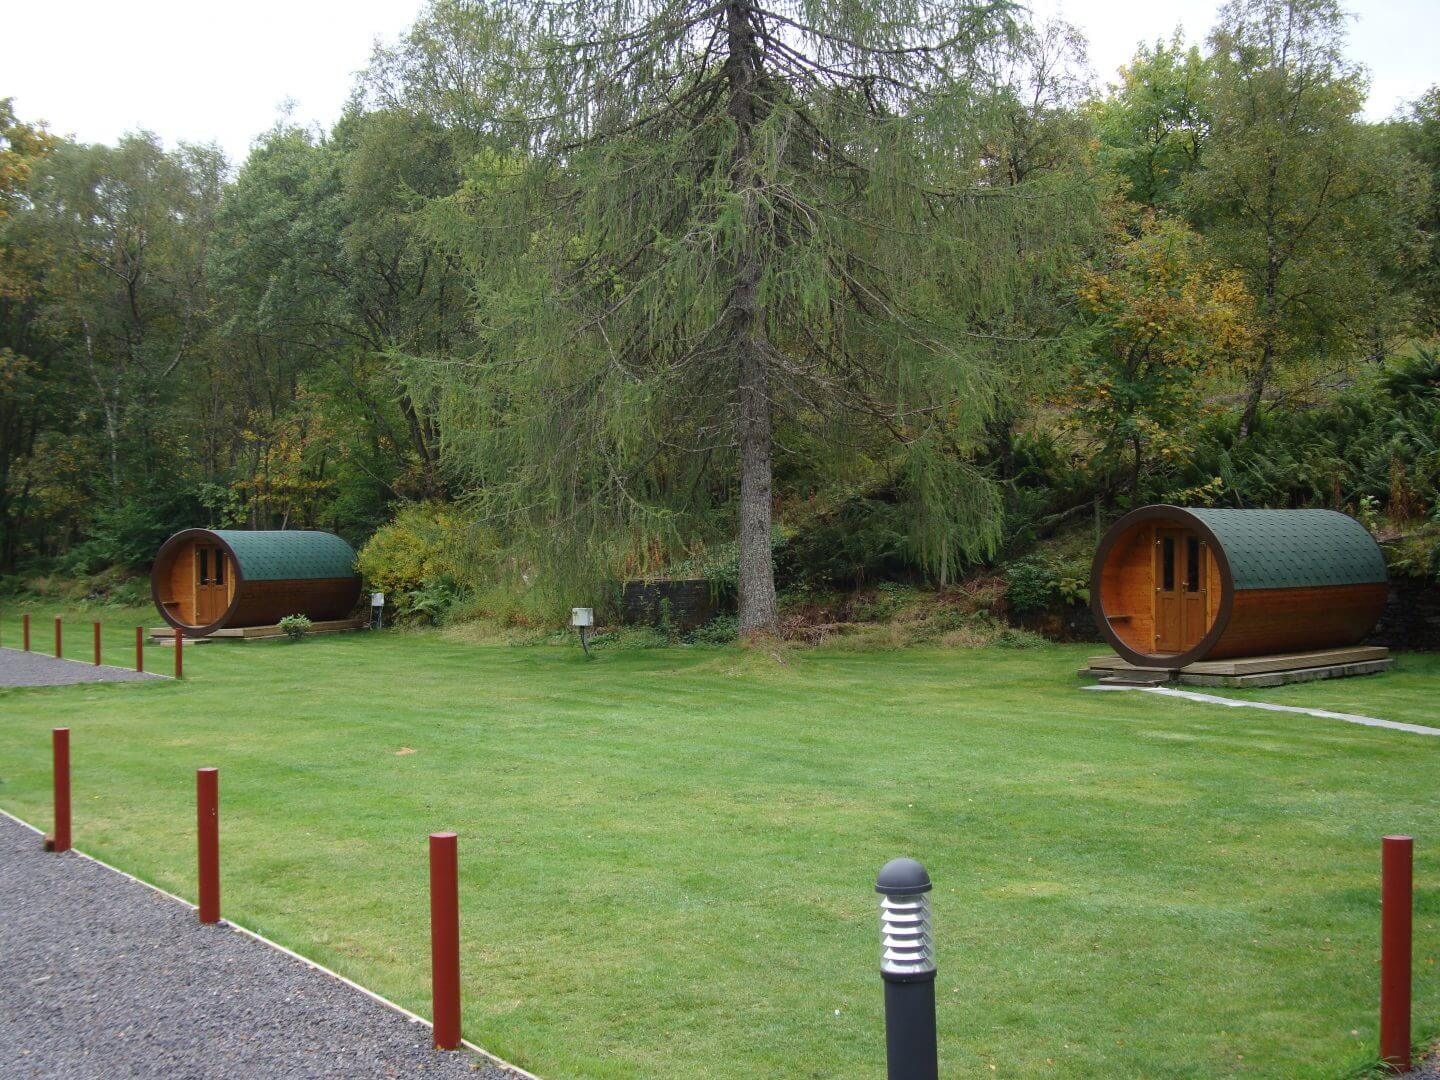 Hobbit Houses at By the Way Hostel